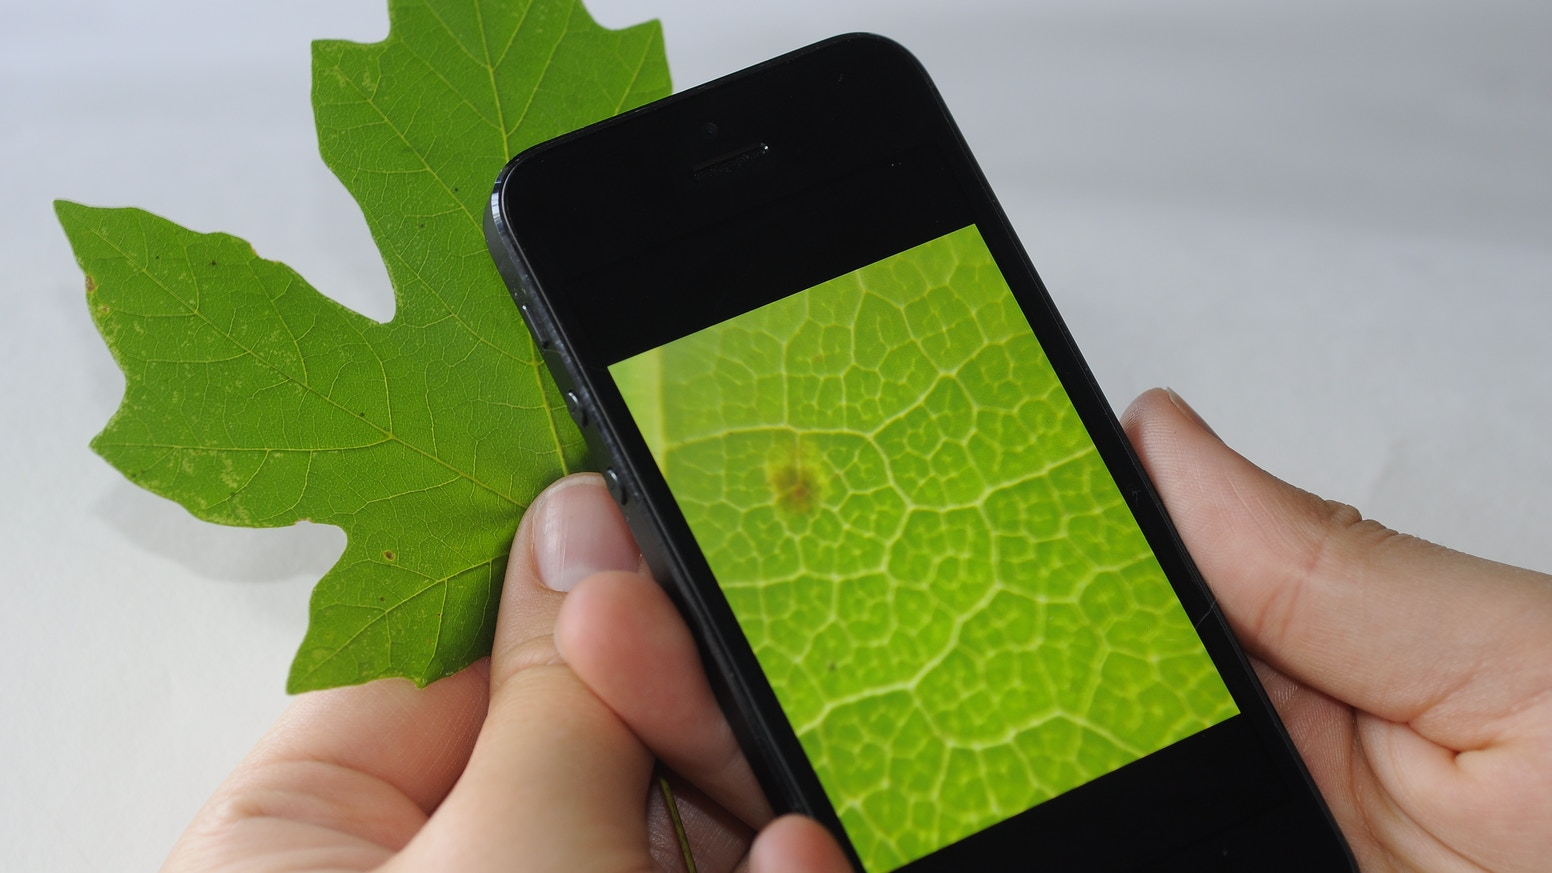 Turn your cell phone or tablet into a microscope with this amazing lens! Works with iPhone, Android and more.